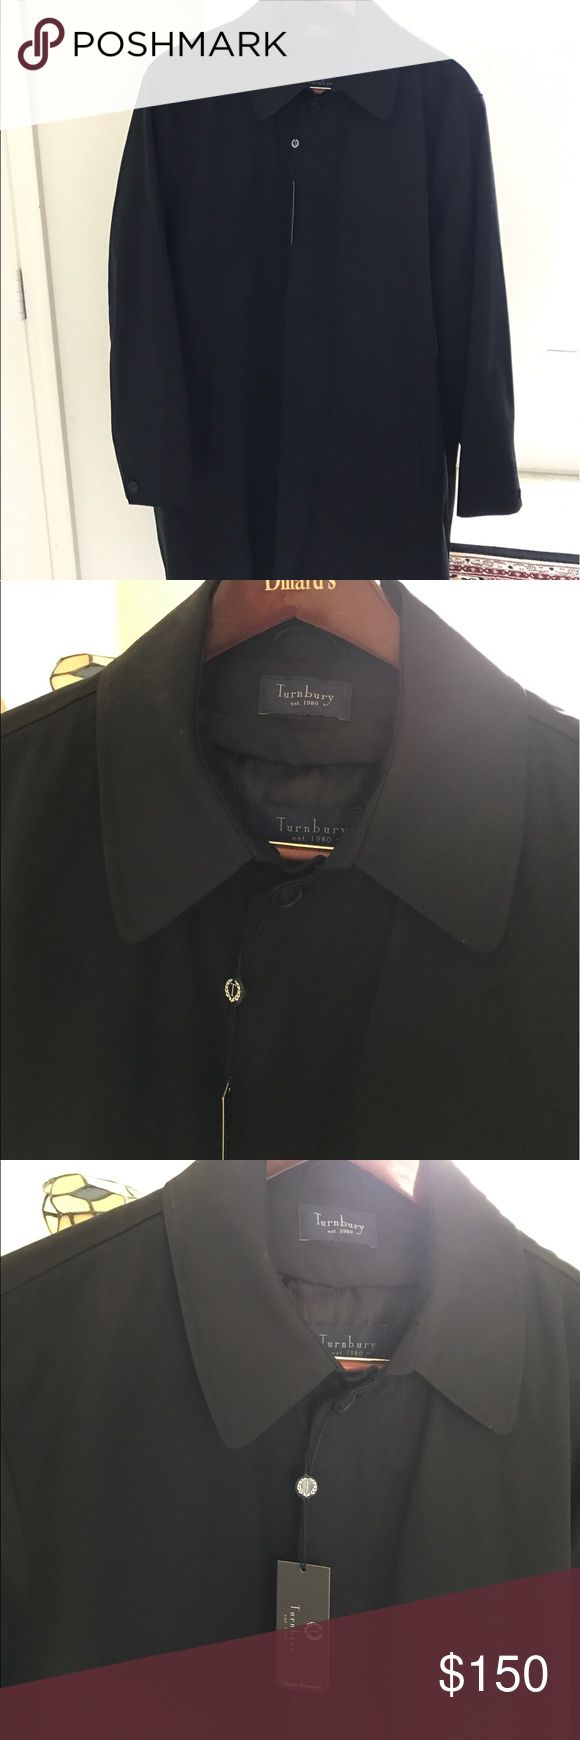 Turnbury men's raincoat trench coat BRAND NEW WITH TAGS. Men's trench rain coat with internal removable wool liner. Has pockets with and without zippers on the inside for belongings. Dad bought this and never wore it because he lost a few pounds now it's too large on him. Water resistant. turnburry Jackets & Coats Trench Coats